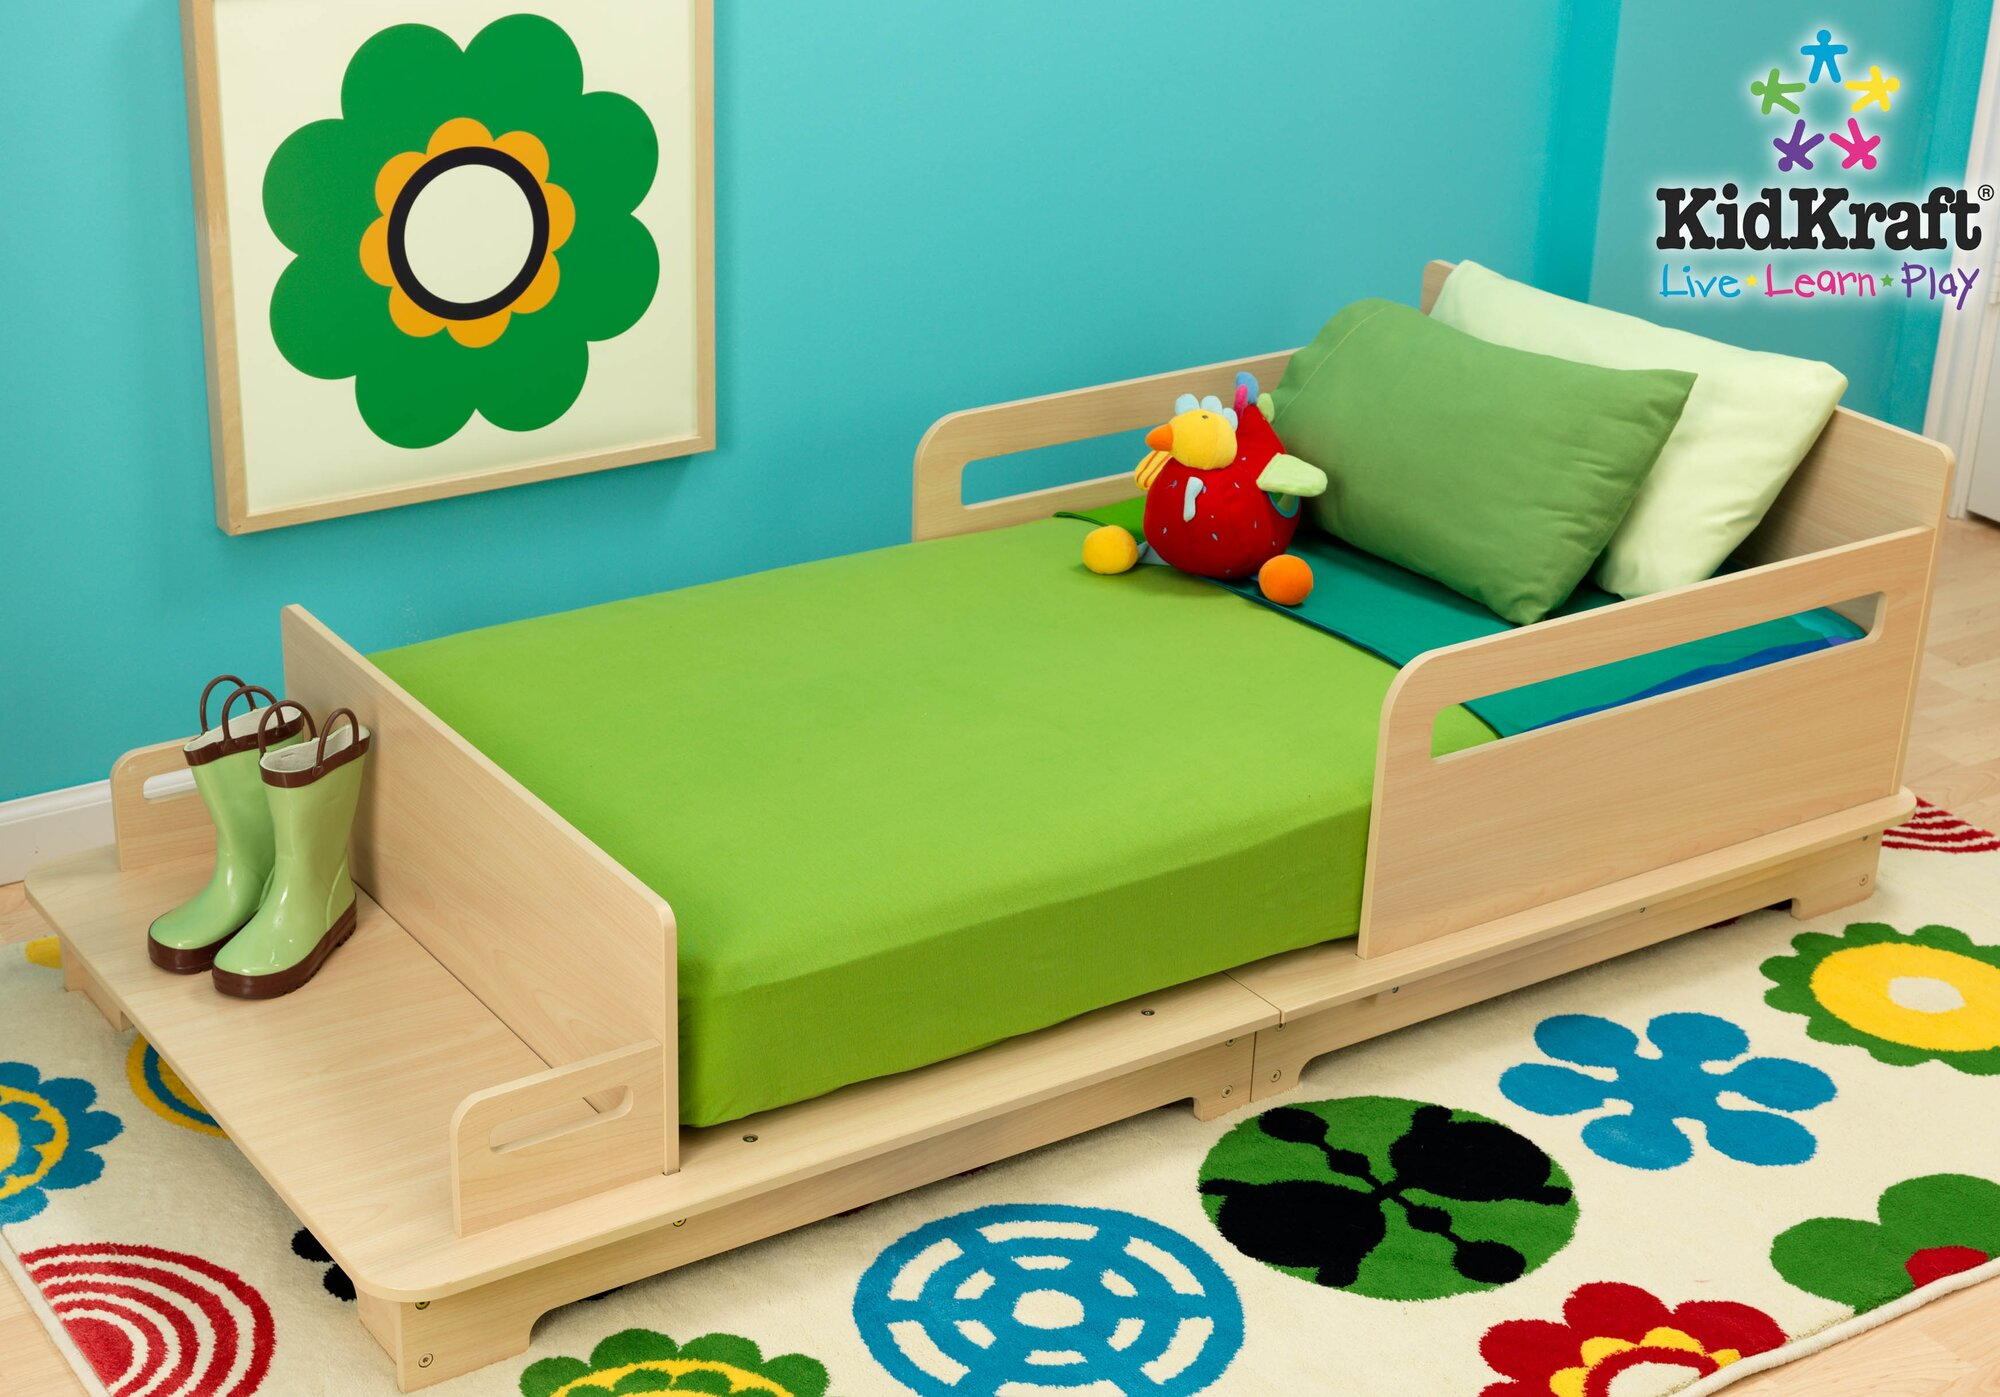 Cool toddler beds for boys - Kidkraft Modern Wood Toddler Bed With Bench Seat